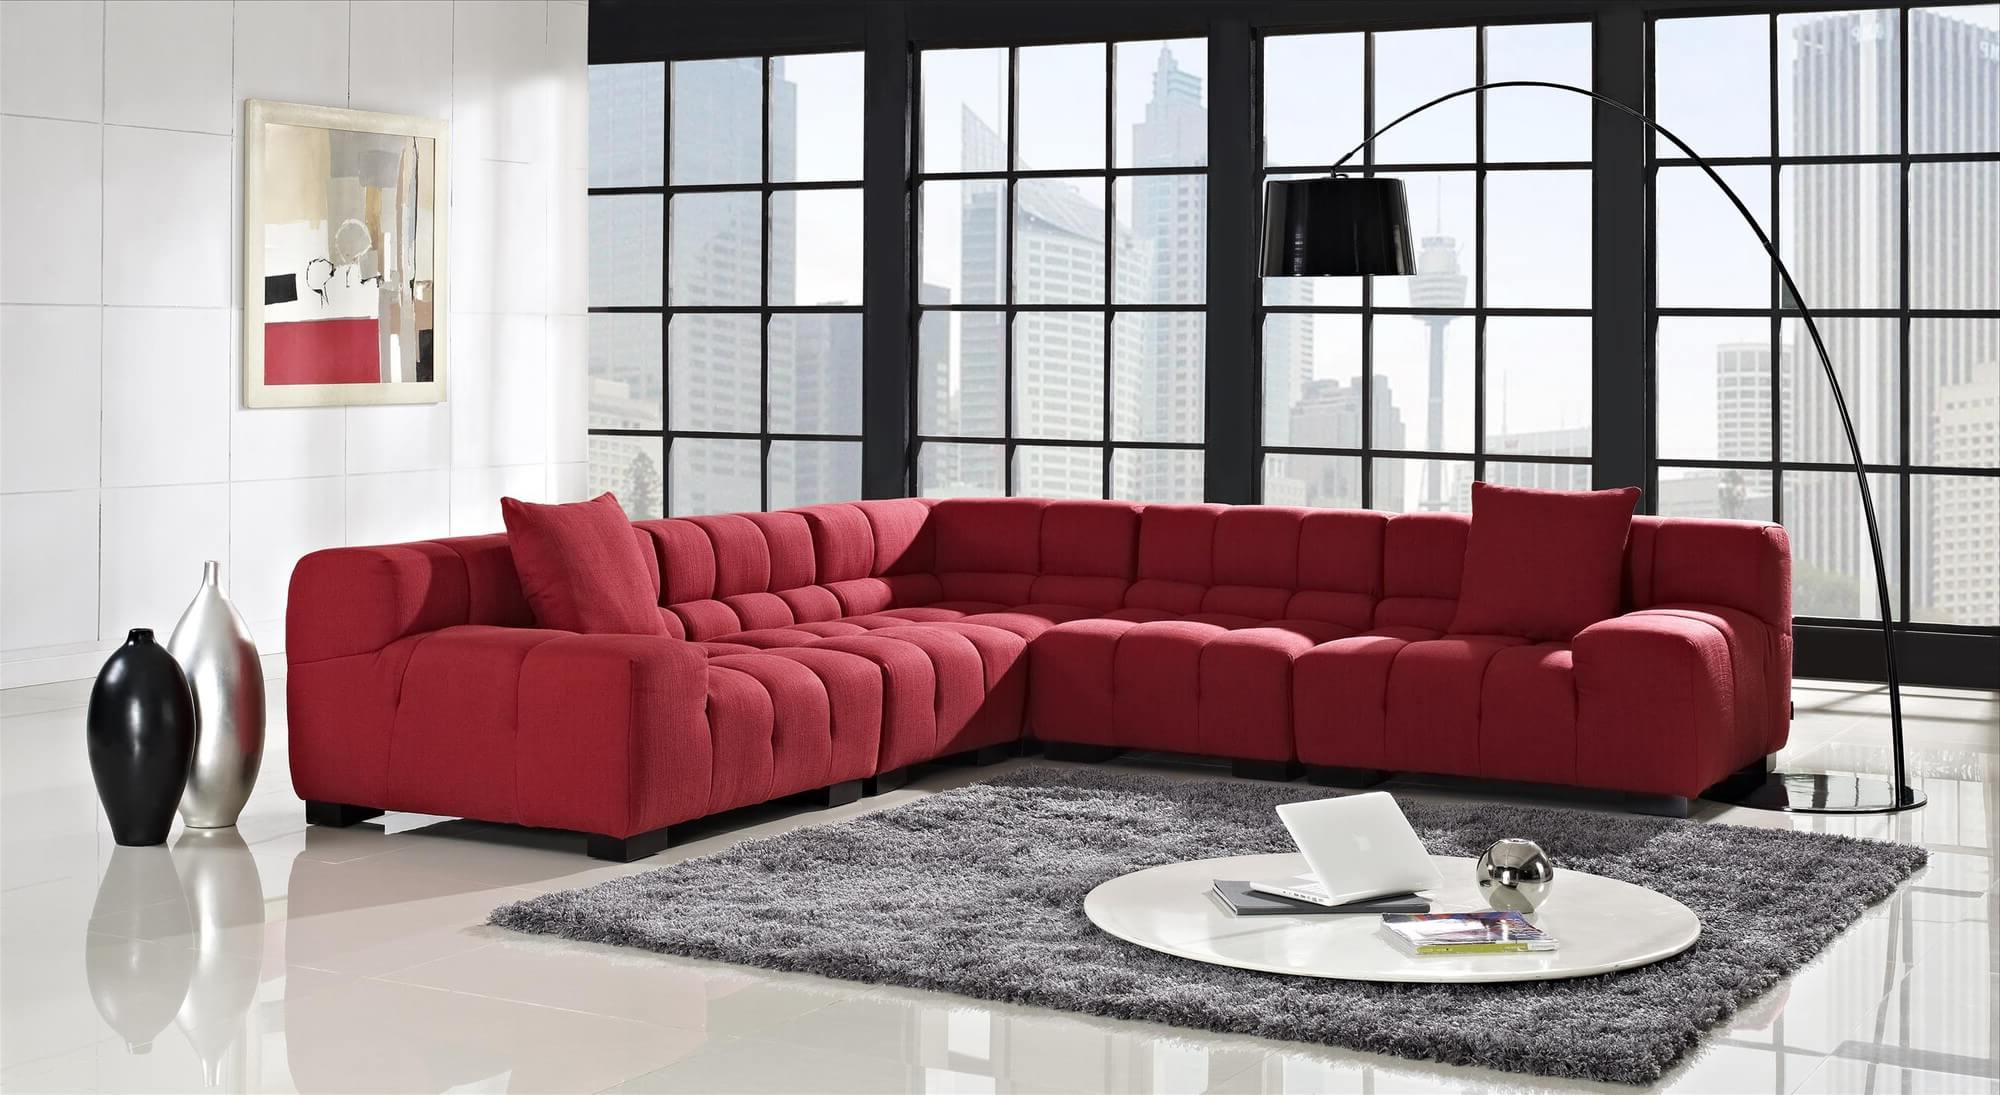 18 Stylish Modern Red Sectional Sofas Pertaining To Latest Mireille Modern And Contemporary Fabric Upholstered Sectional Sofas (View 13 of 20)